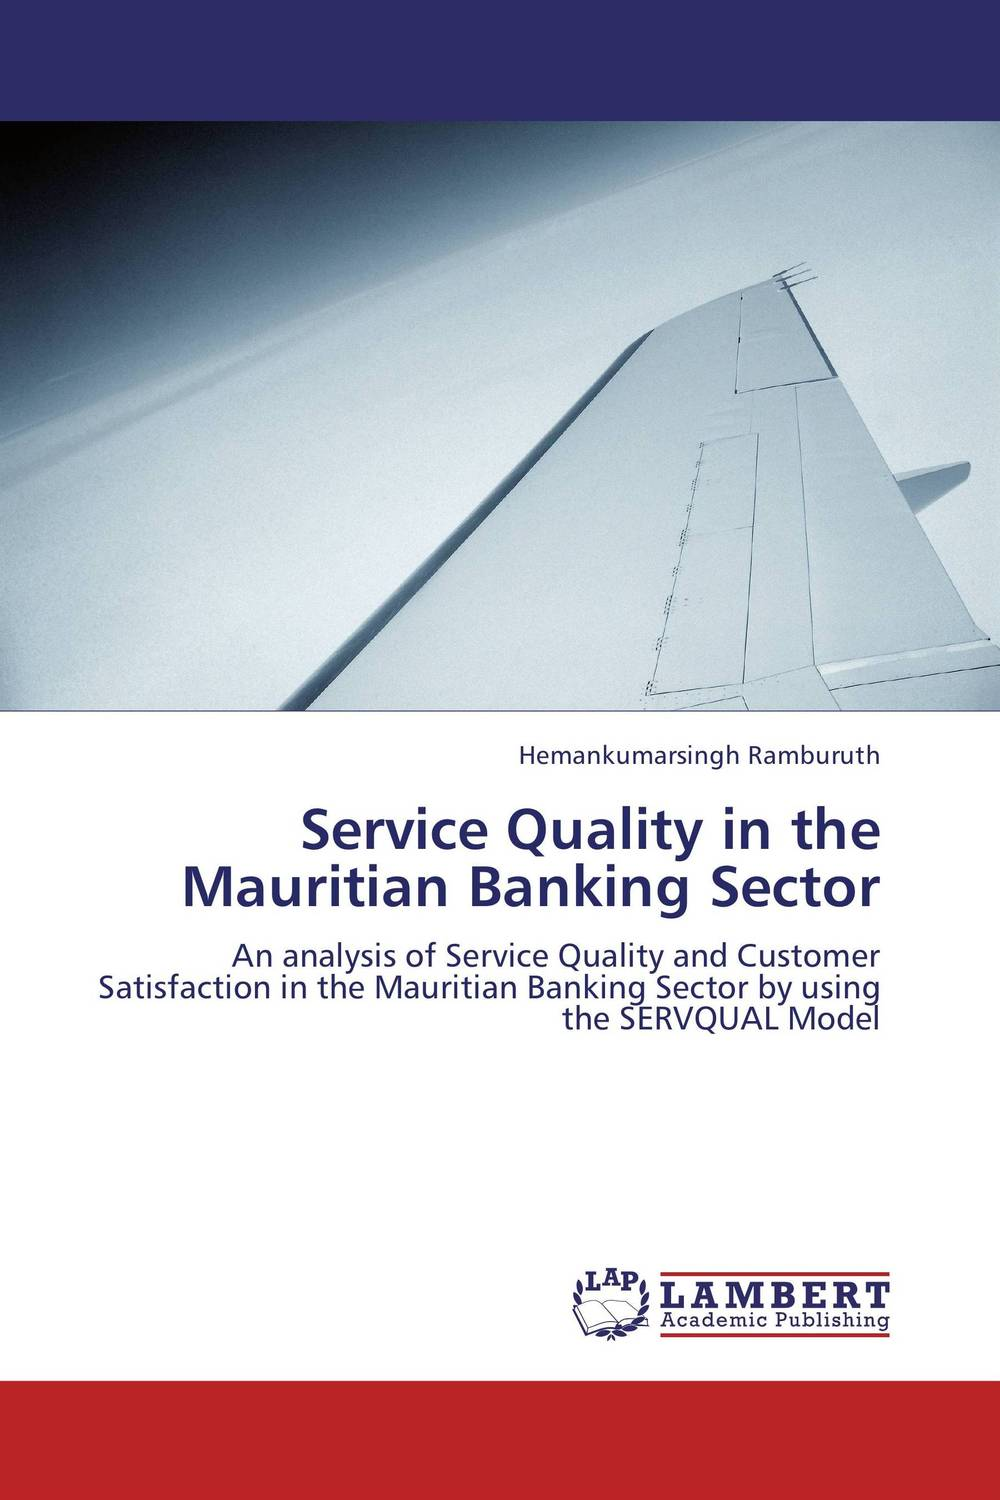 Service Quality in the Mauritian Banking Sector peter block stewardship choosing service over self interest